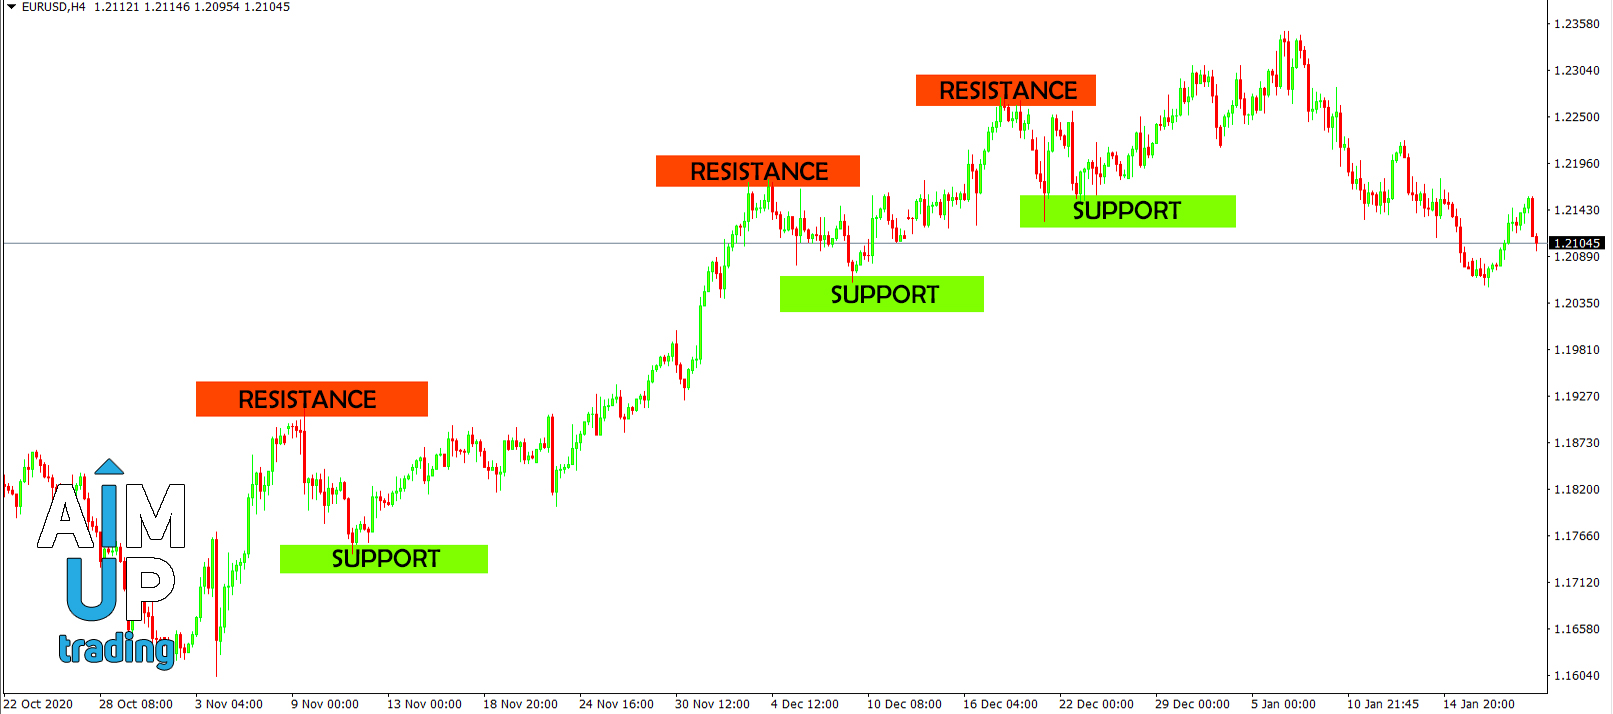 Resistance and support, and how to trade them